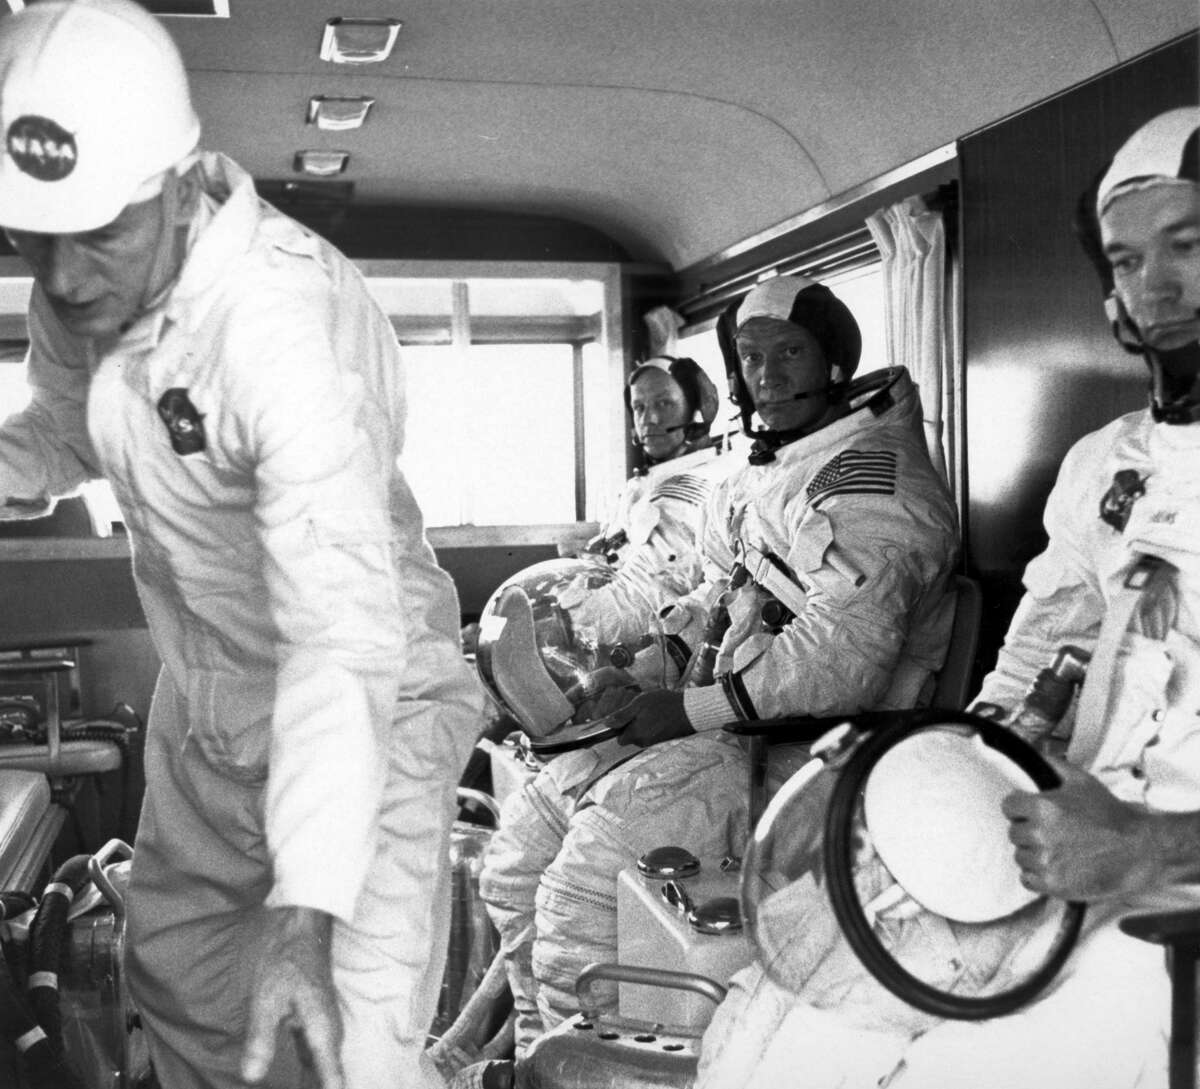 Apollo 11 crew members (rear to front) Neil Armstrong, Edwin Aldrin, and Michael Collins, wearing space suits, ride the van to the launch pad to participate in the countdown demonstration test for the upcoming Apollo 11 mission. The Apollo 11 mission, the first lunar landing mission, launched from the Kennedy Space Center (KSC) in Florida via the Marshall Space Flight Center (MSFC) developed Saturn V launch vehicle on July 16, 1969.